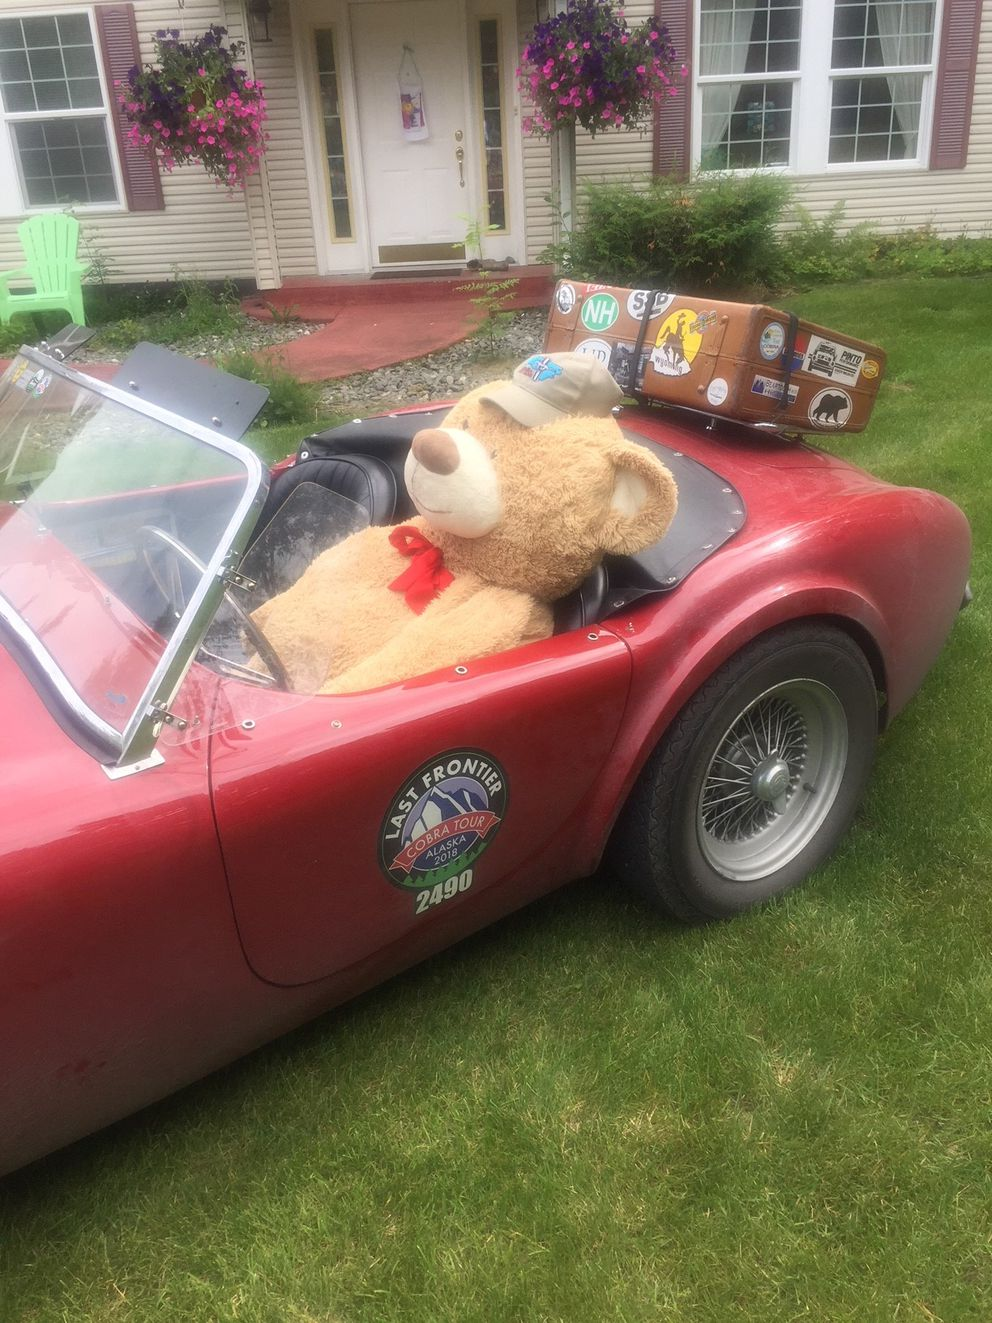 Friends left a gift in Tom Cotter's Shelby Cobra after a real bear broke in and damaged it. (Courtesy David Karpik)